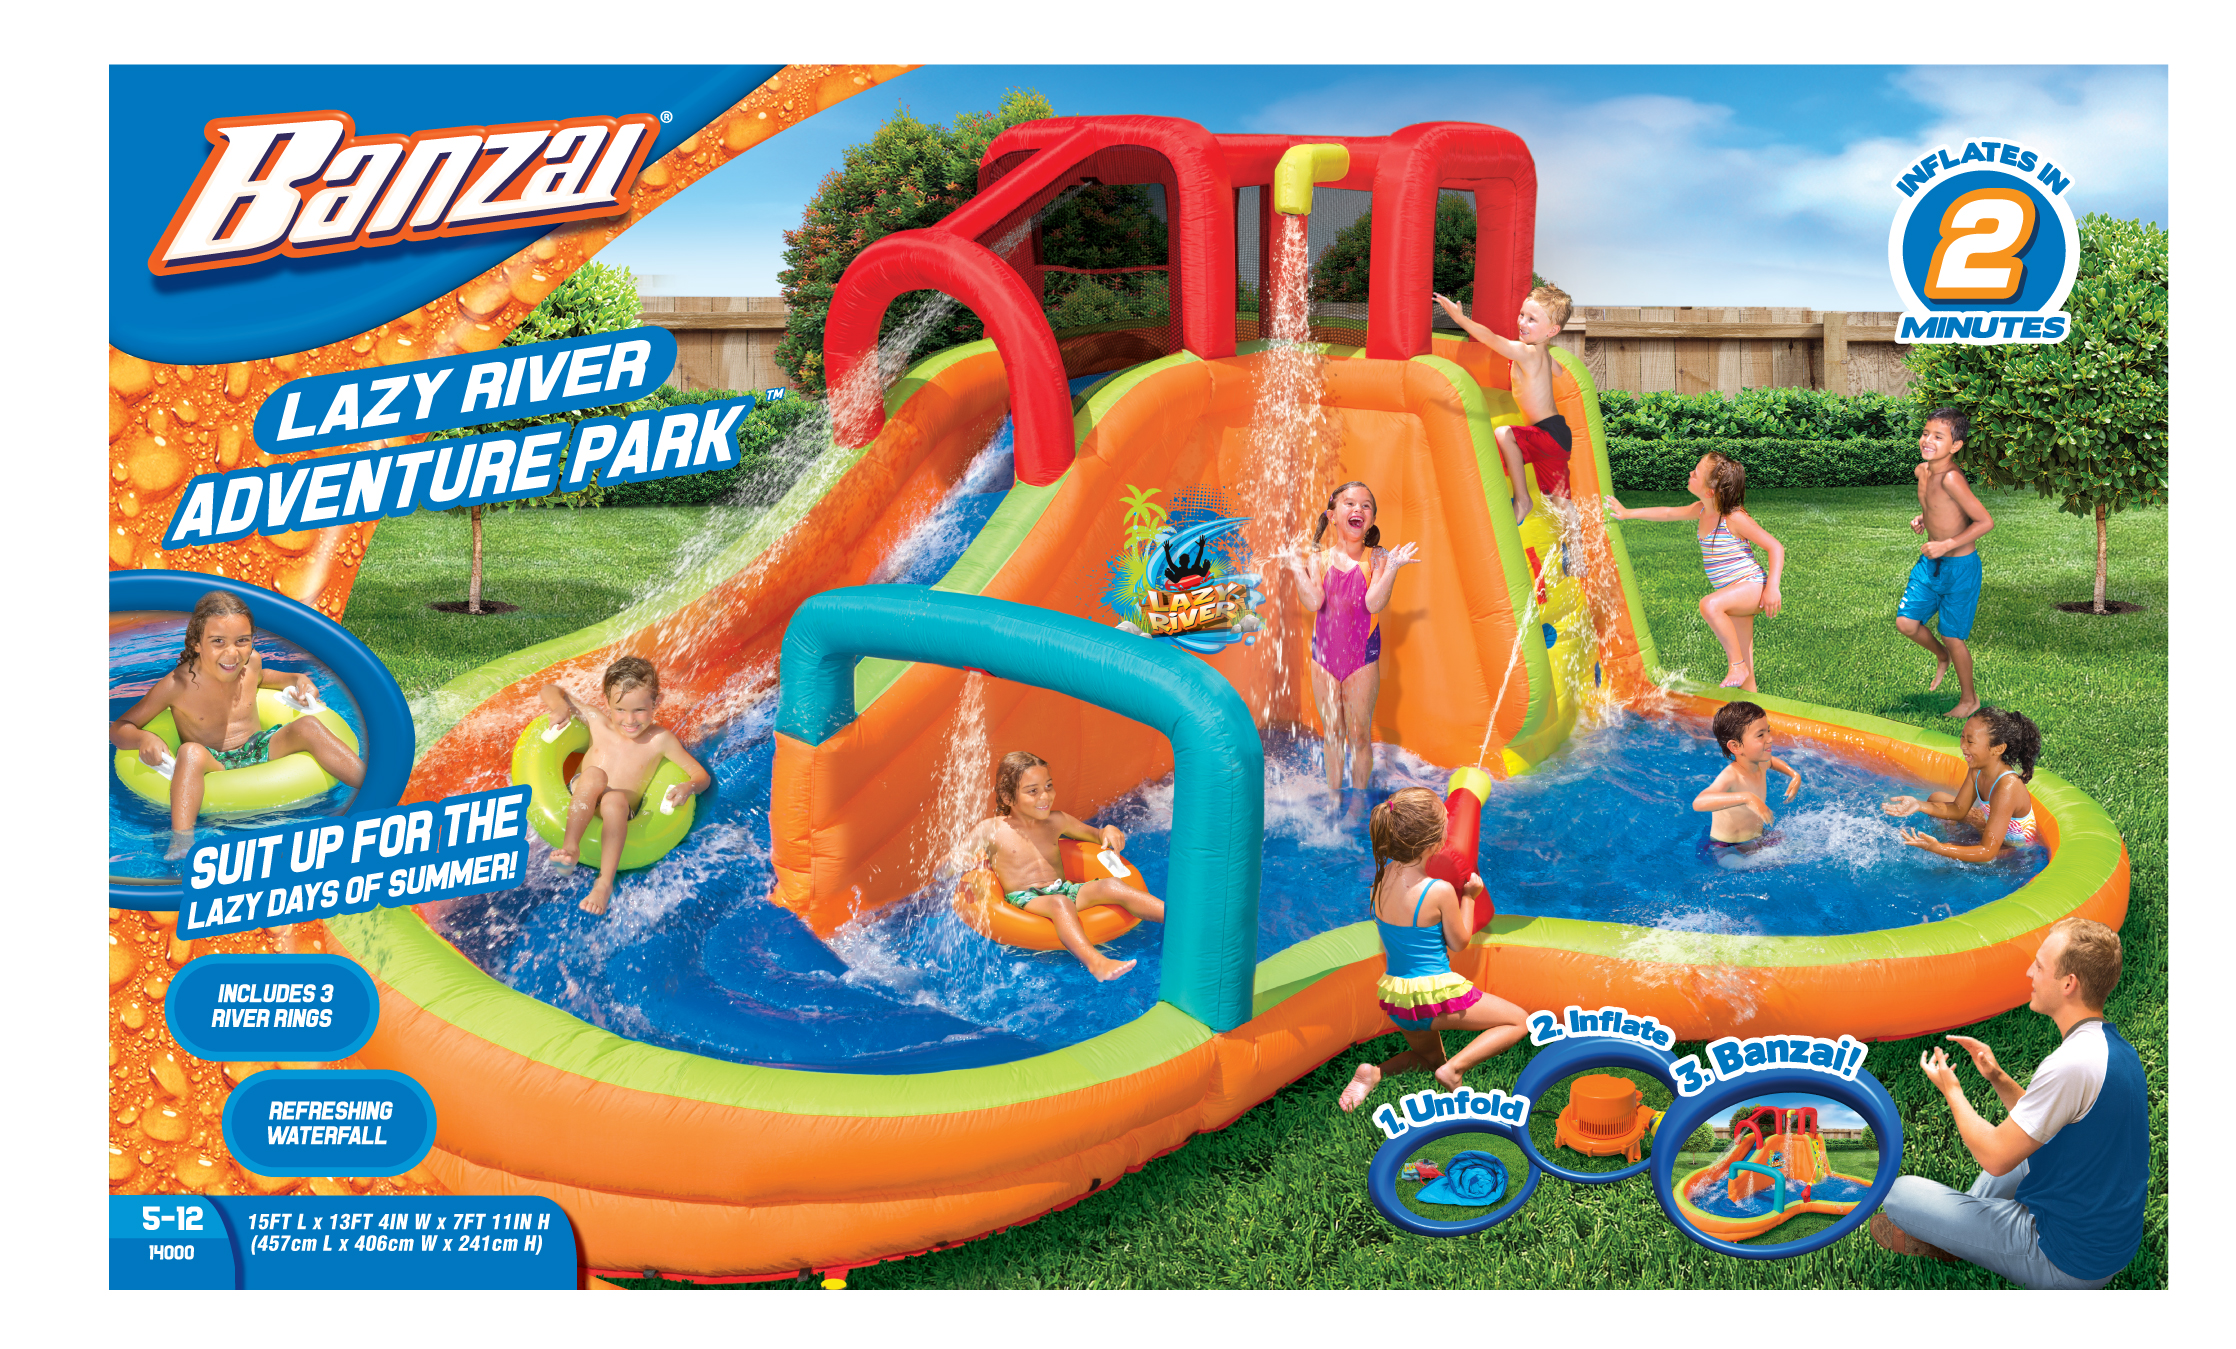 Click here to buy Banzai Lazy River Adventure Park (Backyard Inflatable Waterslide with Sprinkler, Cannon and Lagoon Splash Pool) by Banzai.